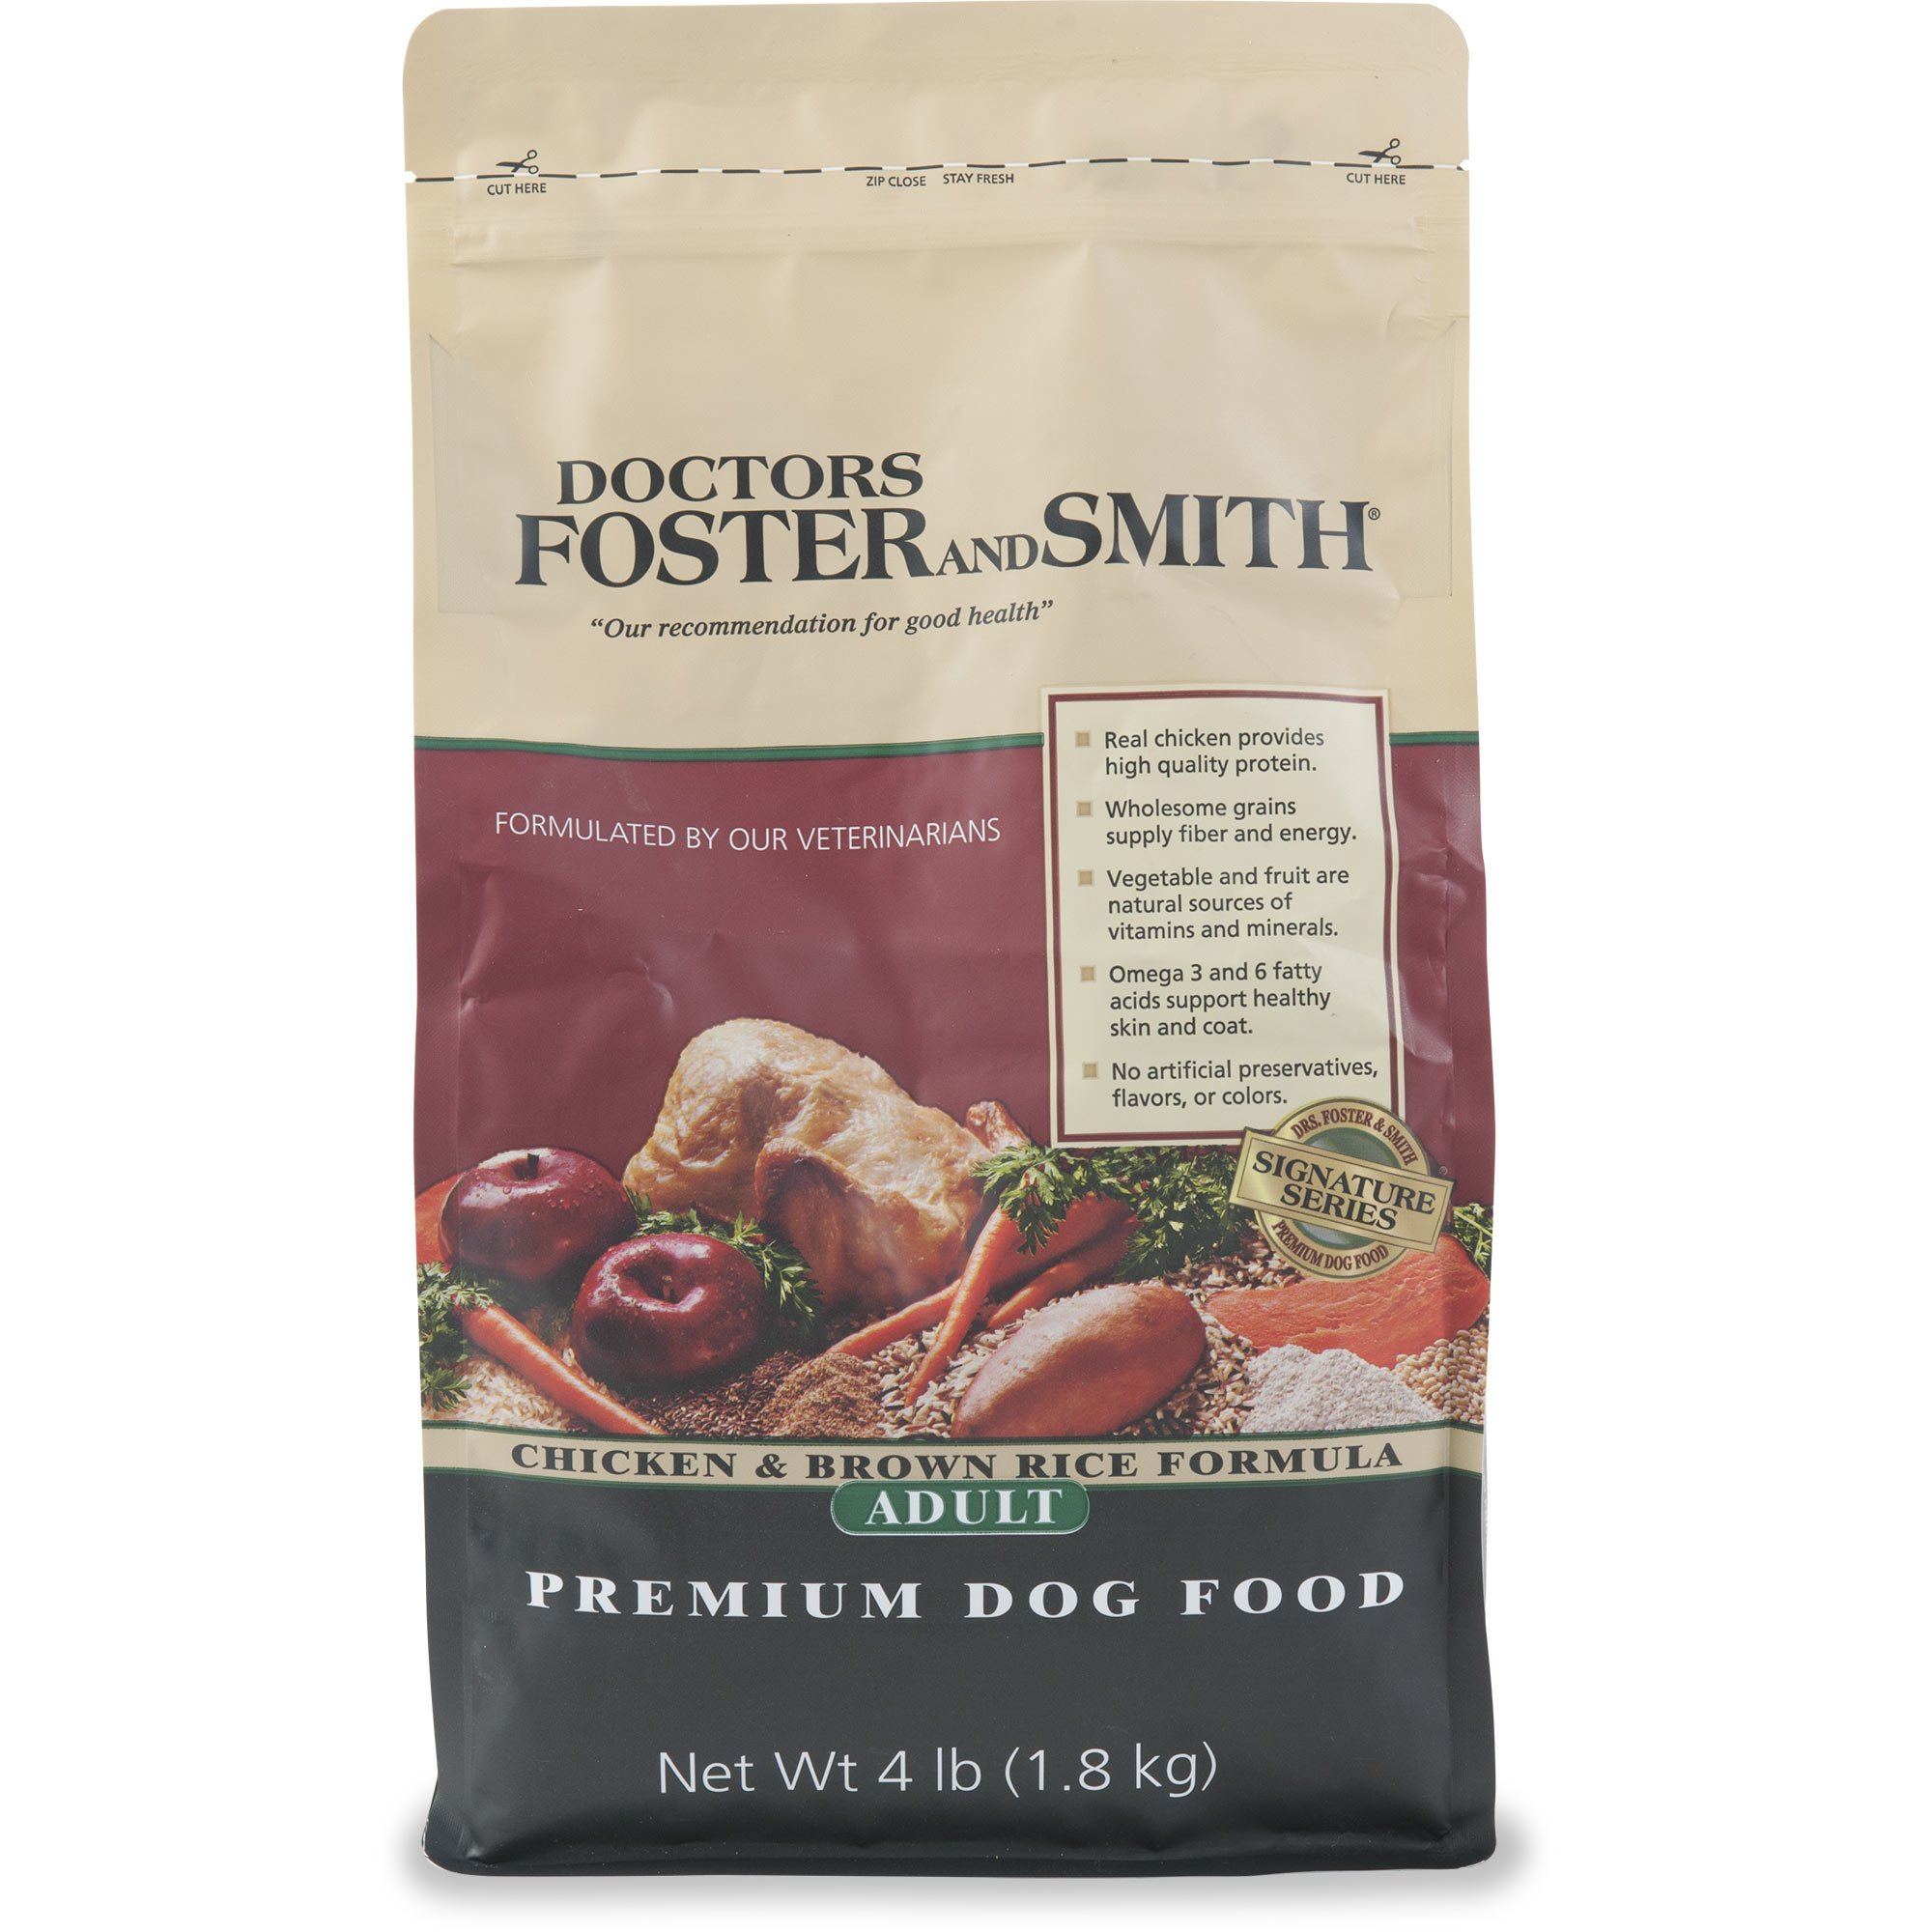 Drs. Foster and Smith Signature Series Chicken & Brown Rice Formula Adult Dry Dog Food, 4 lbs.